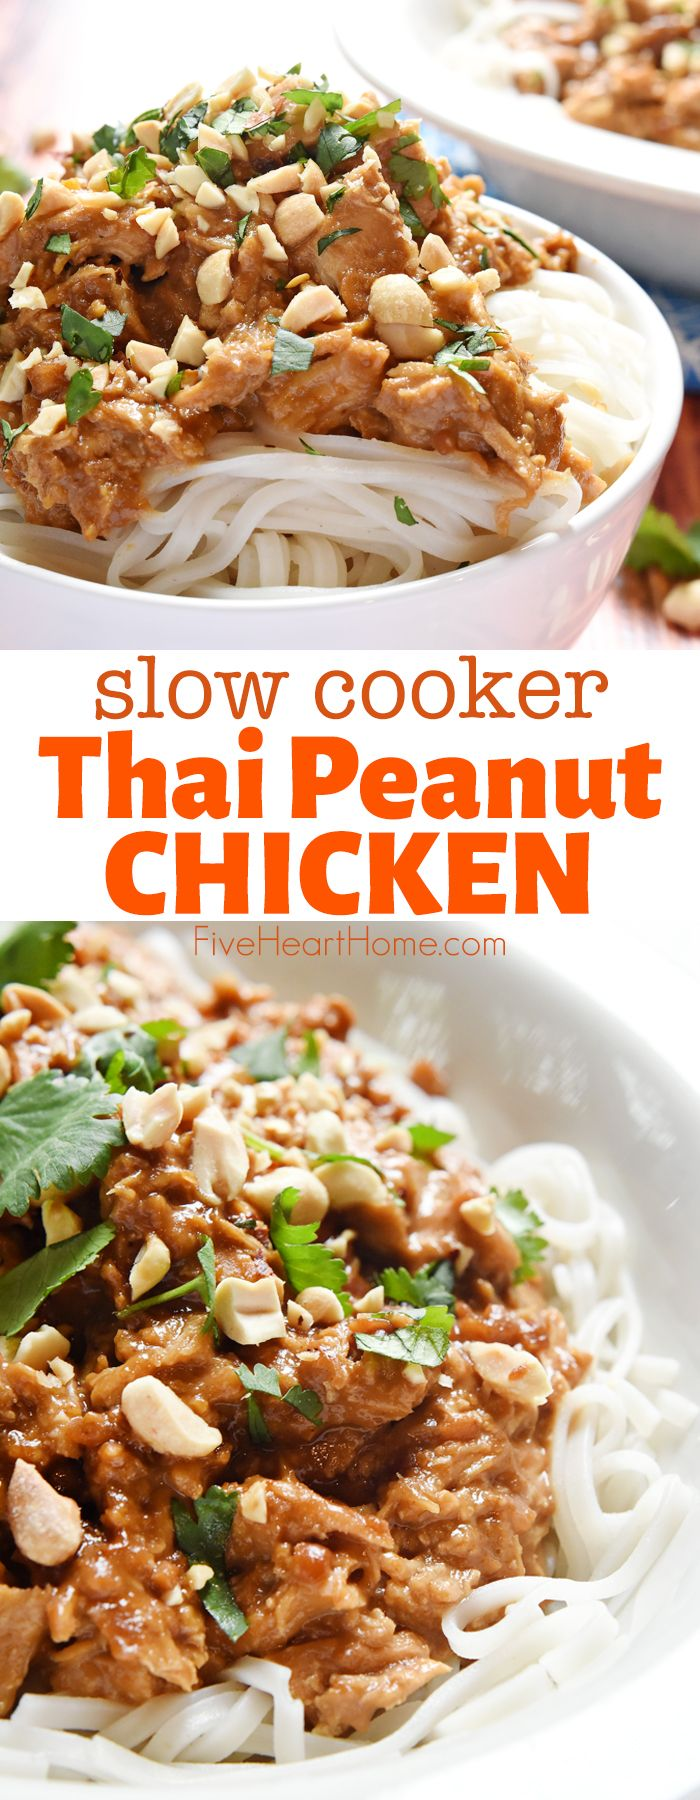 AMAZING Slow Cooker Thai Peanut Chicken • FIVEheartHOME